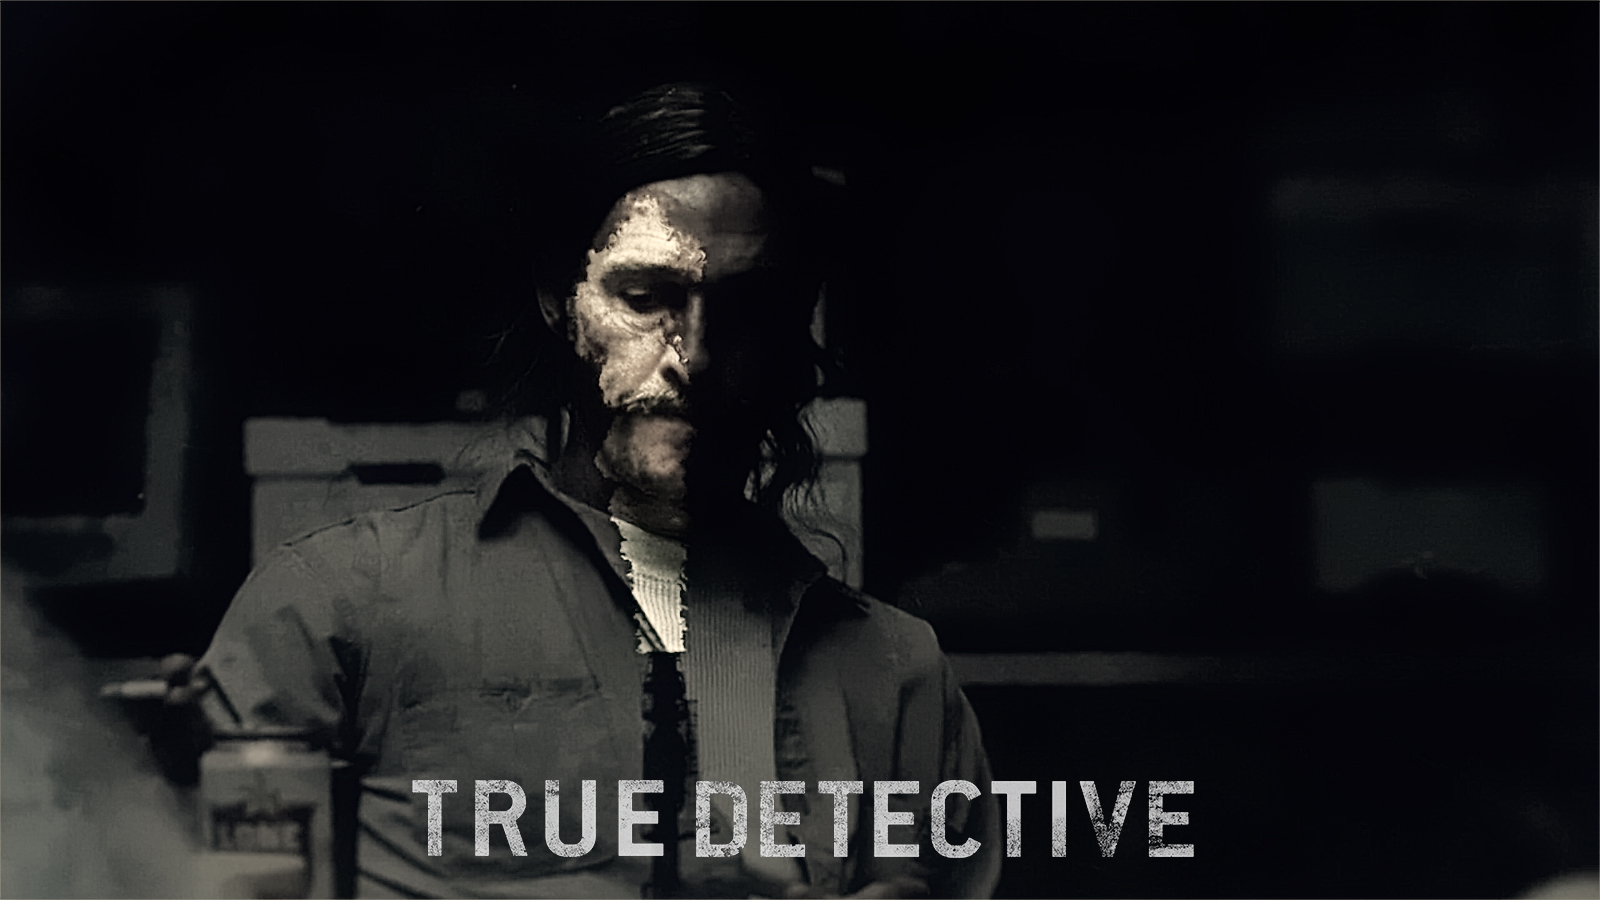 True Detectiv tapeta13